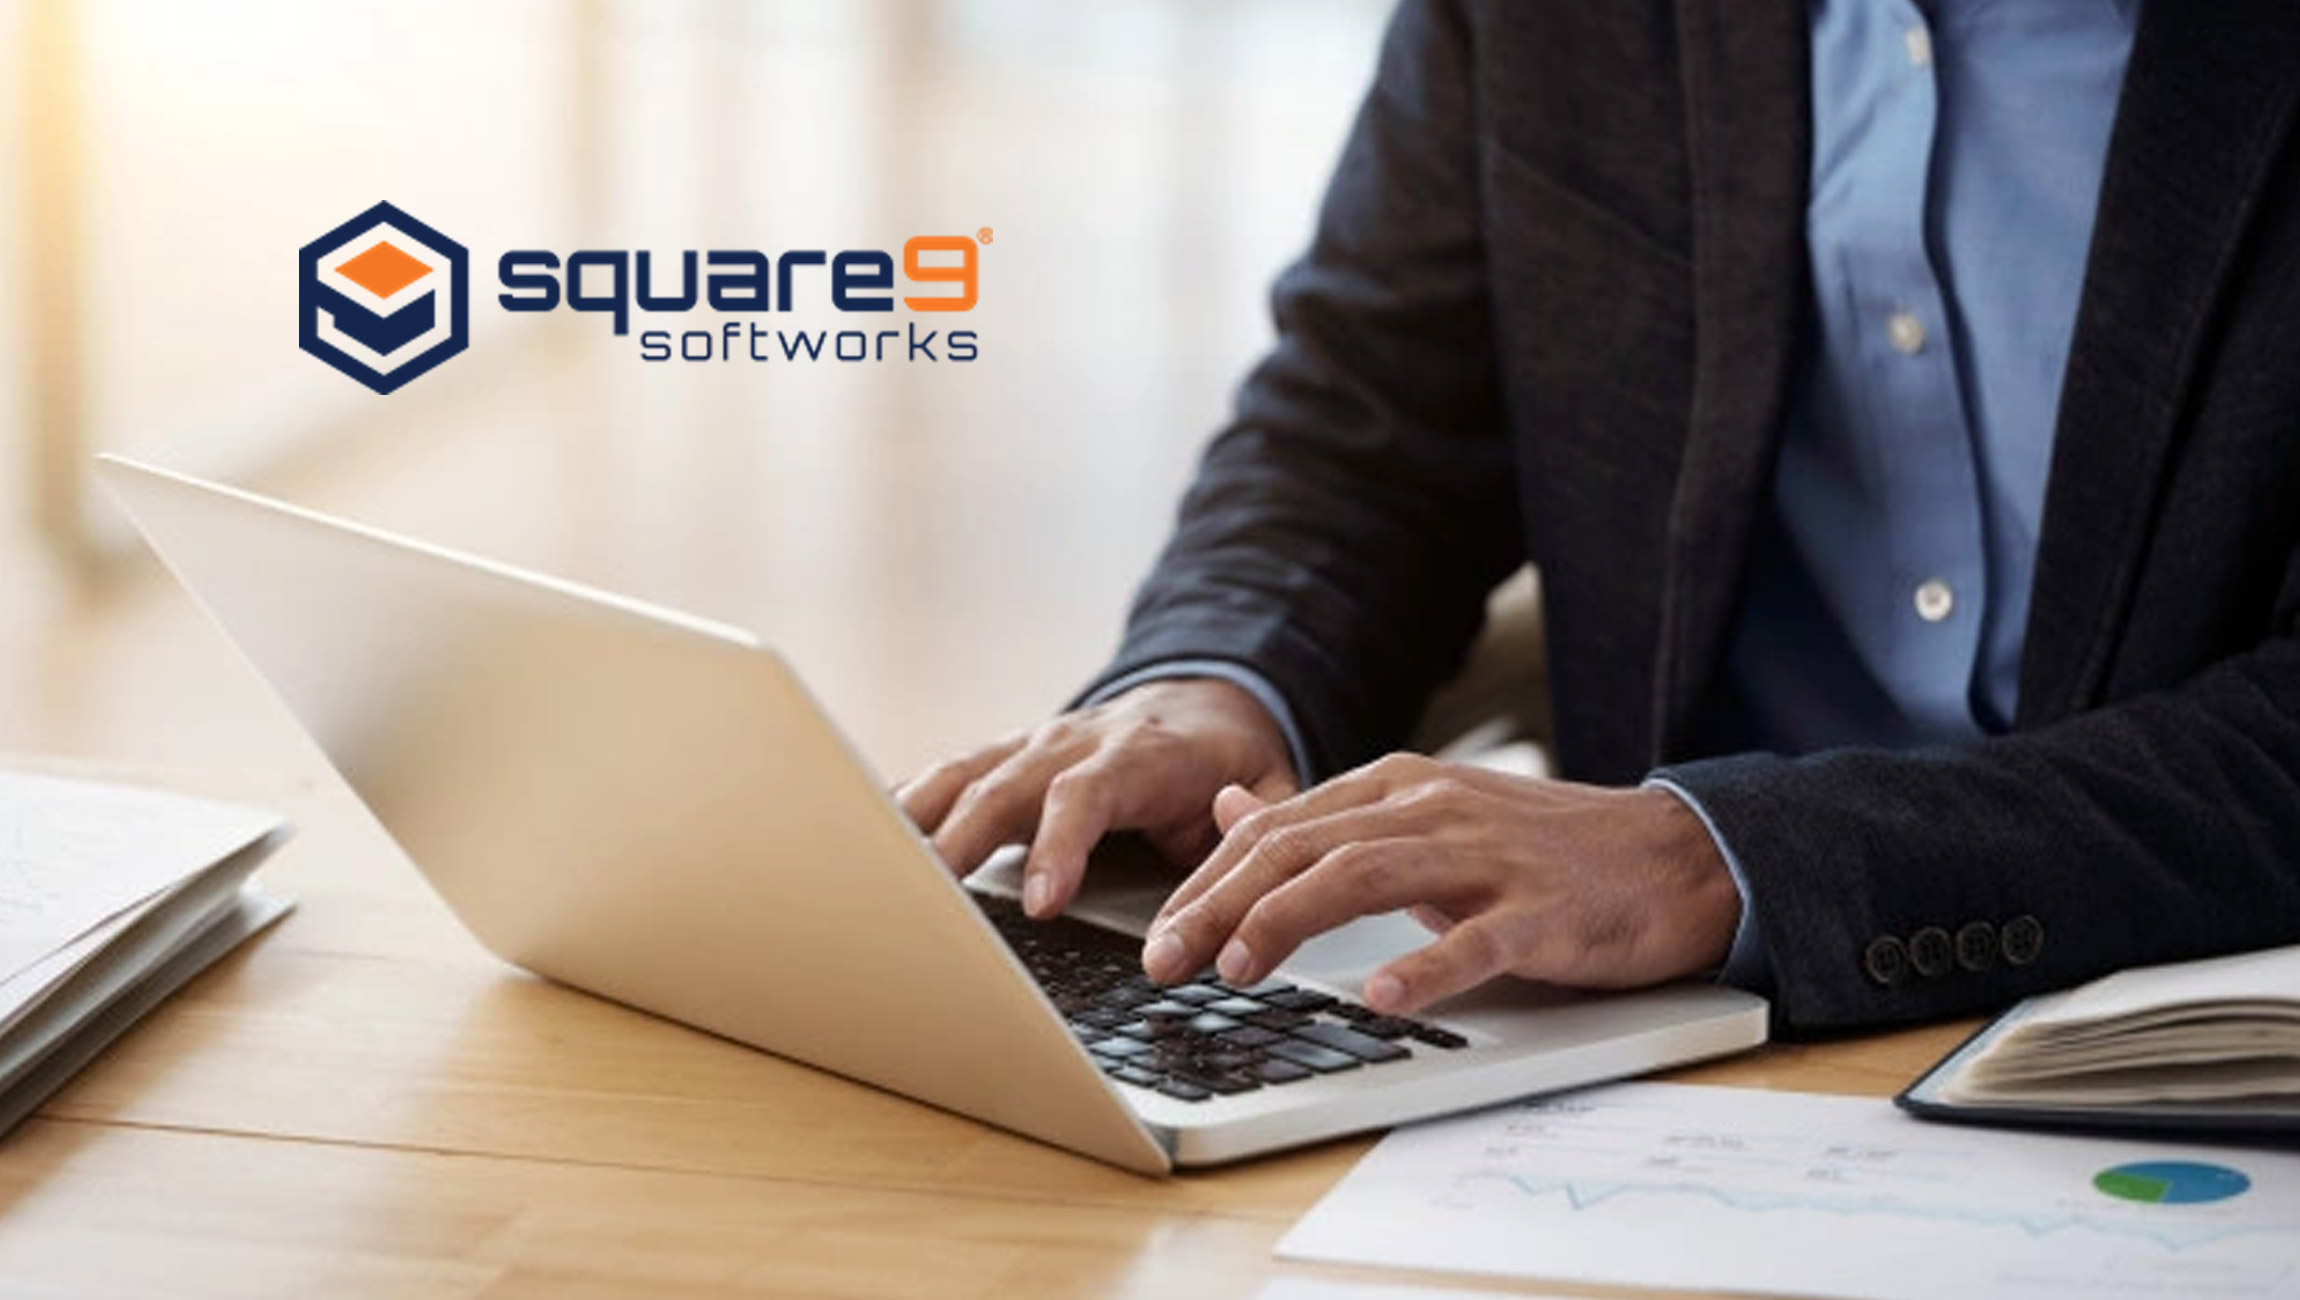 Square 9 Softworks® Releases A Simplified, More Streamlined Experience with GlobalSearch 6.1